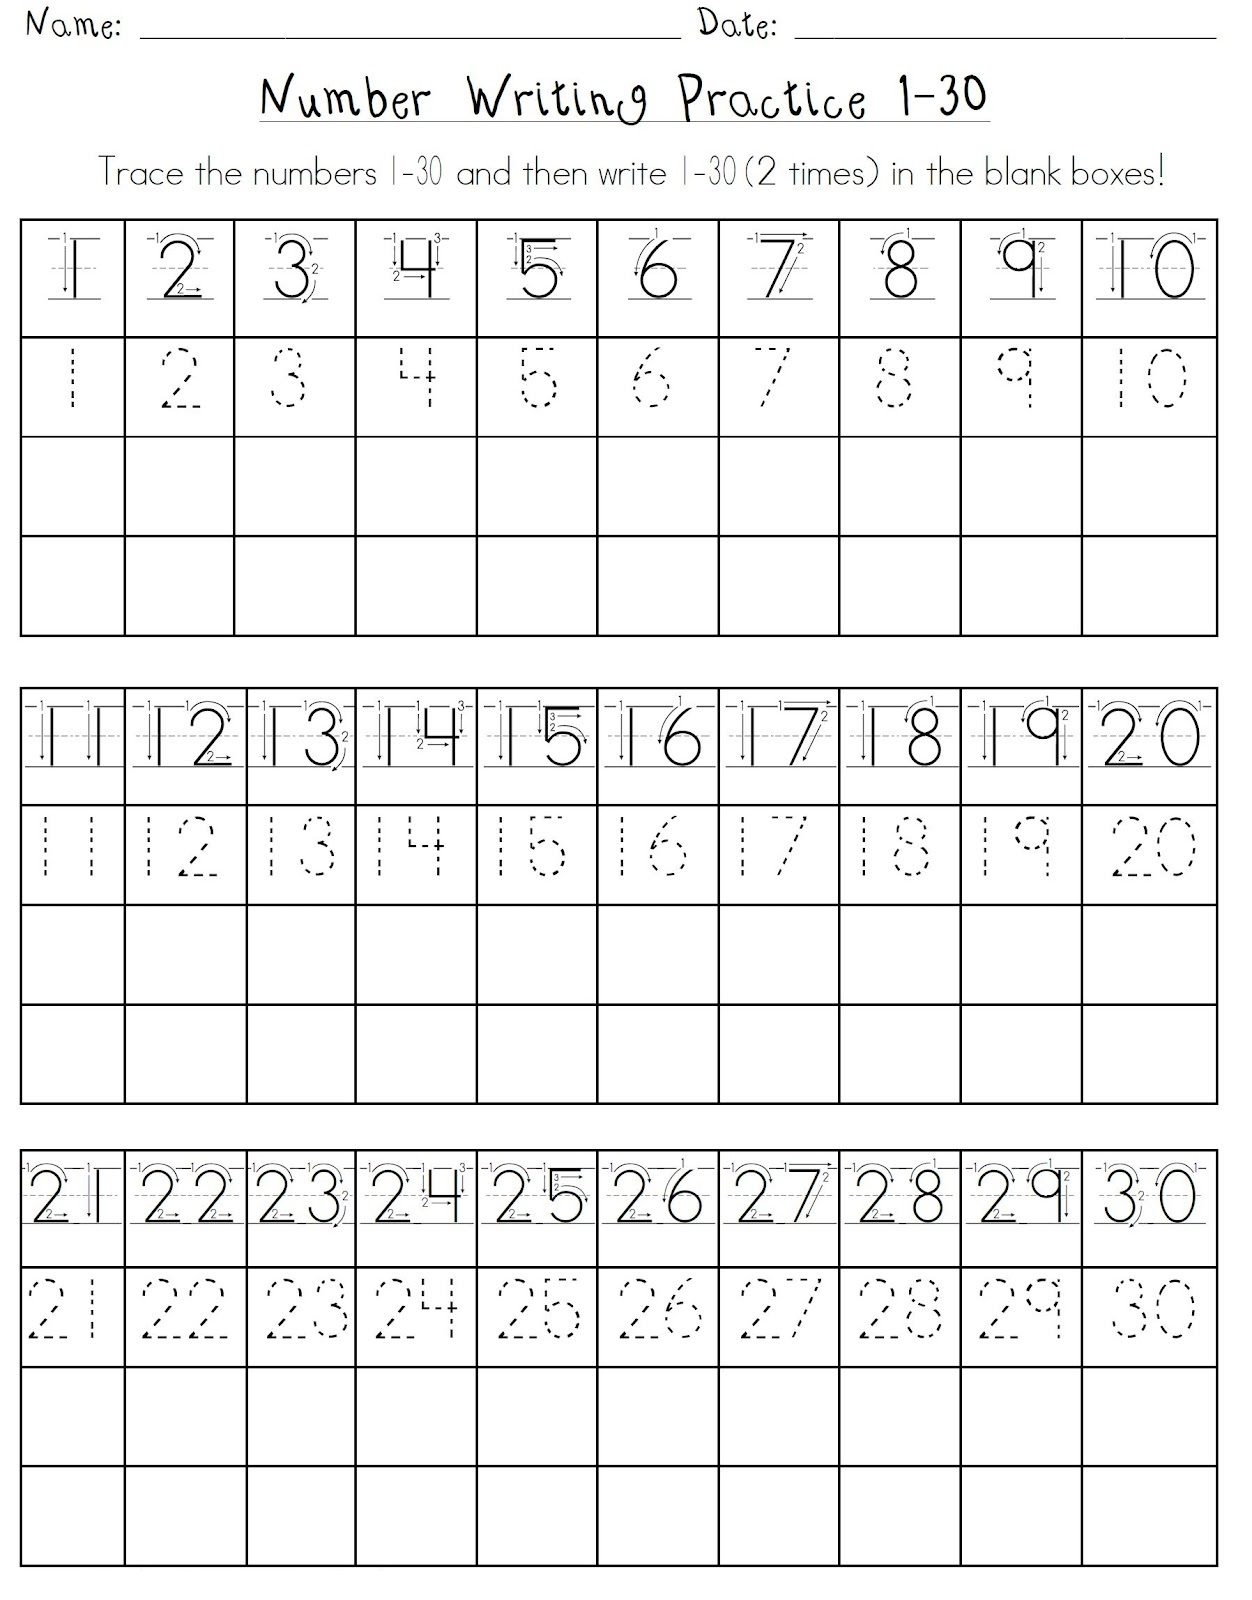 Number Handwriting Worksheets Printable Deployday – Number Writing Practice Worksheets